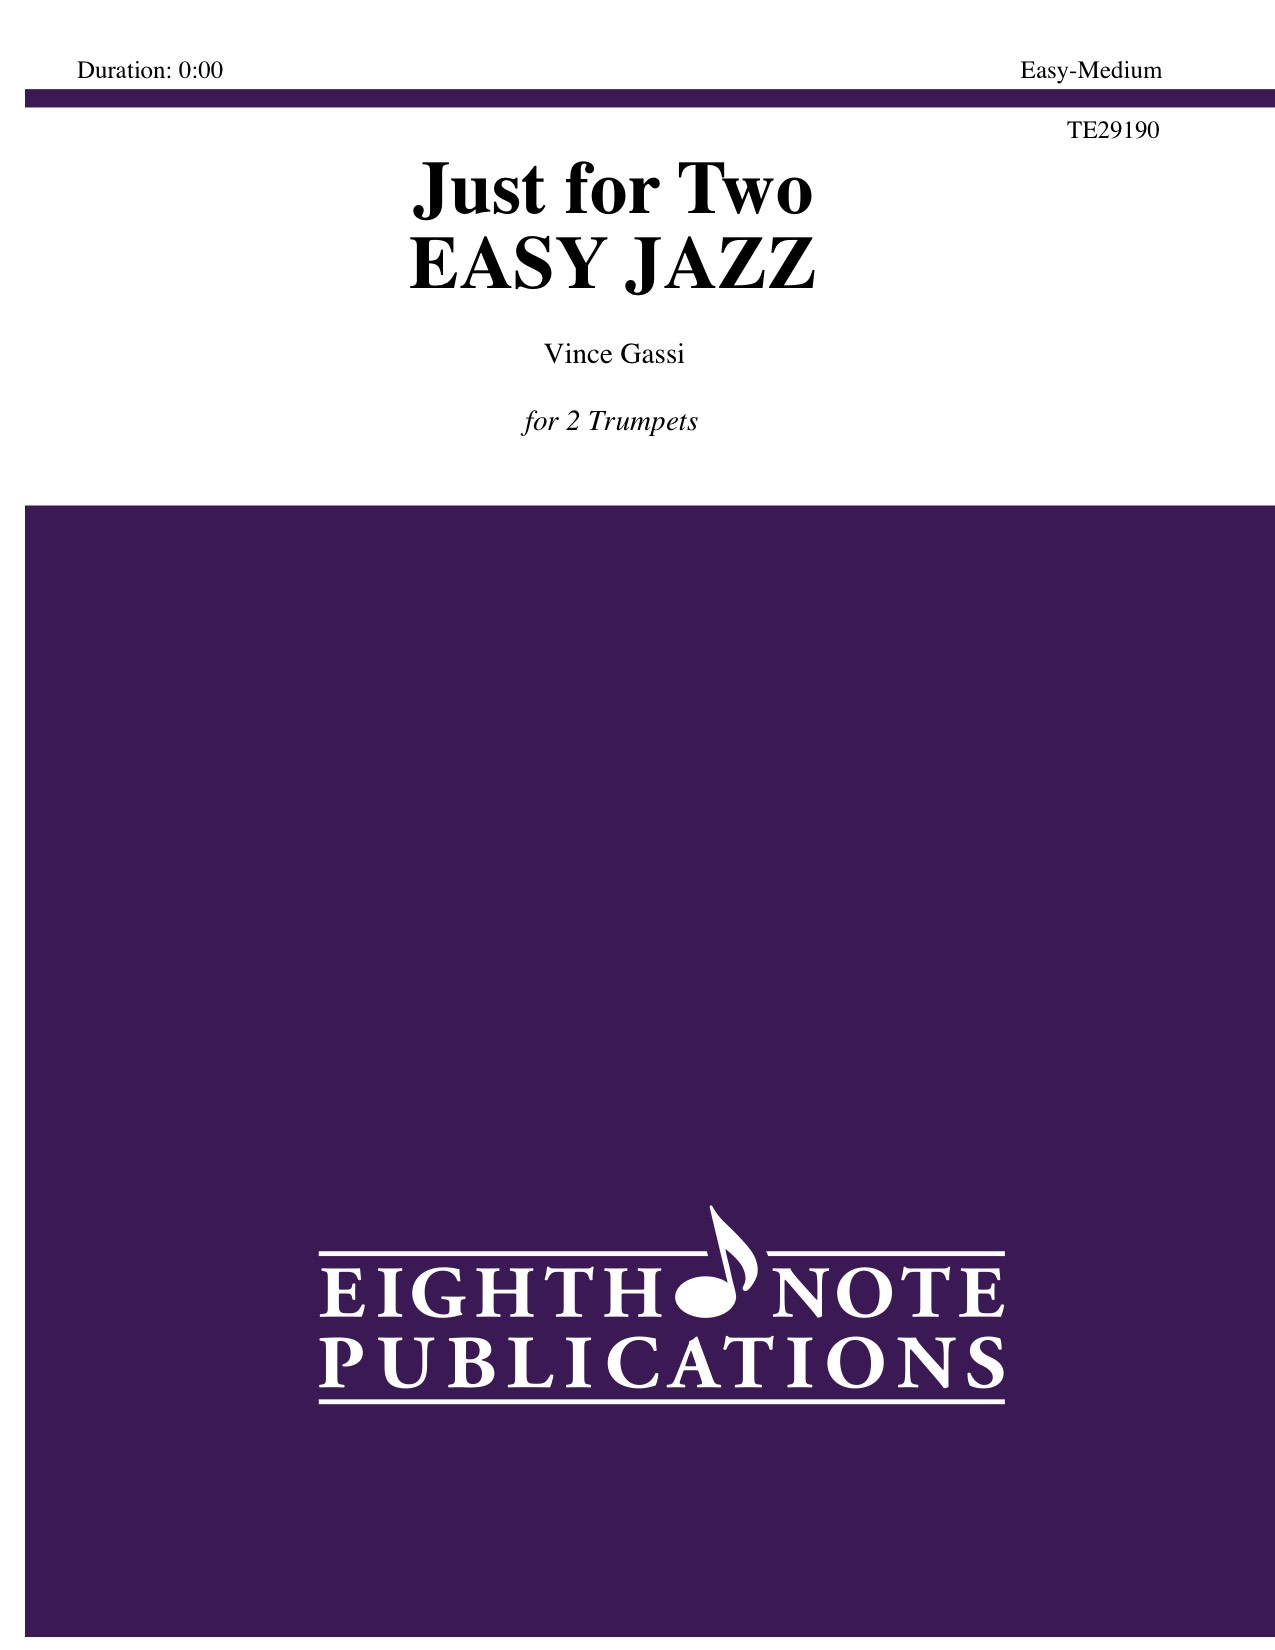 Just for 2 - EASY JAZZ - Vince Gassi